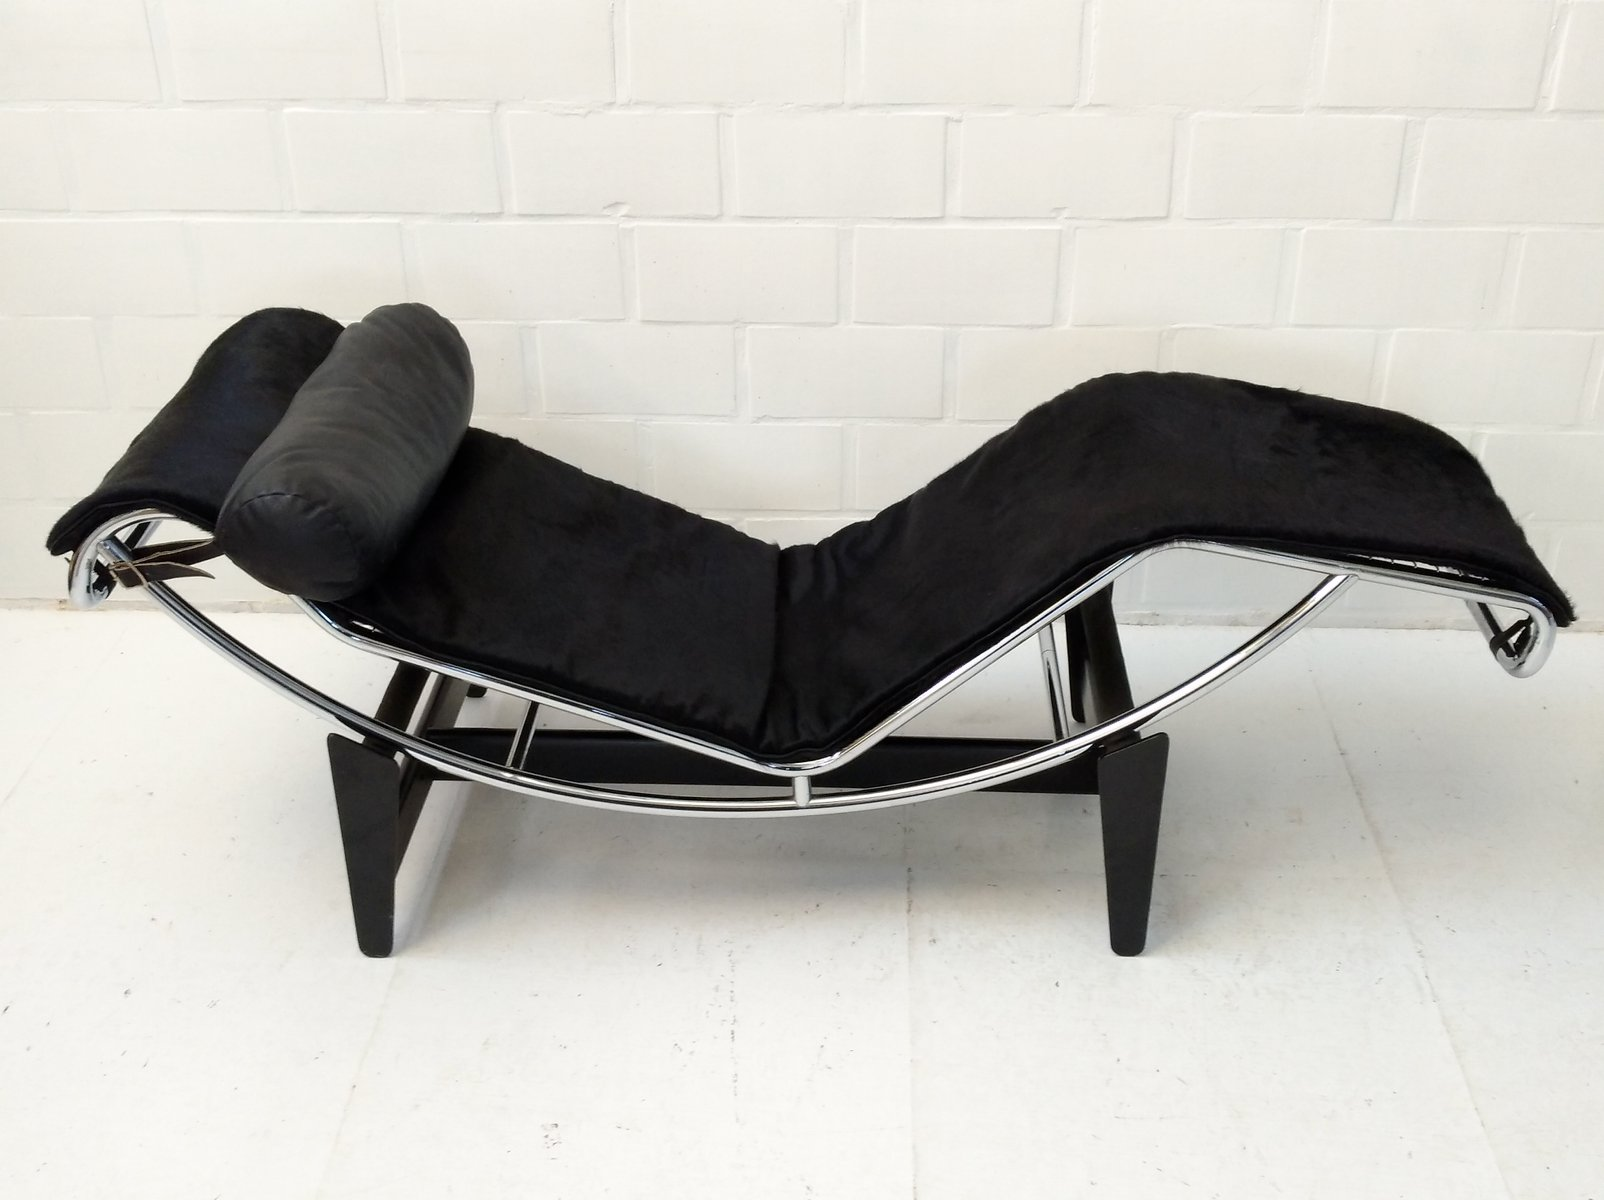 early lc4 chaise longue by le corbusier perriand jeanneret for cassina 1960s for sale at pamono. Black Bedroom Furniture Sets. Home Design Ideas